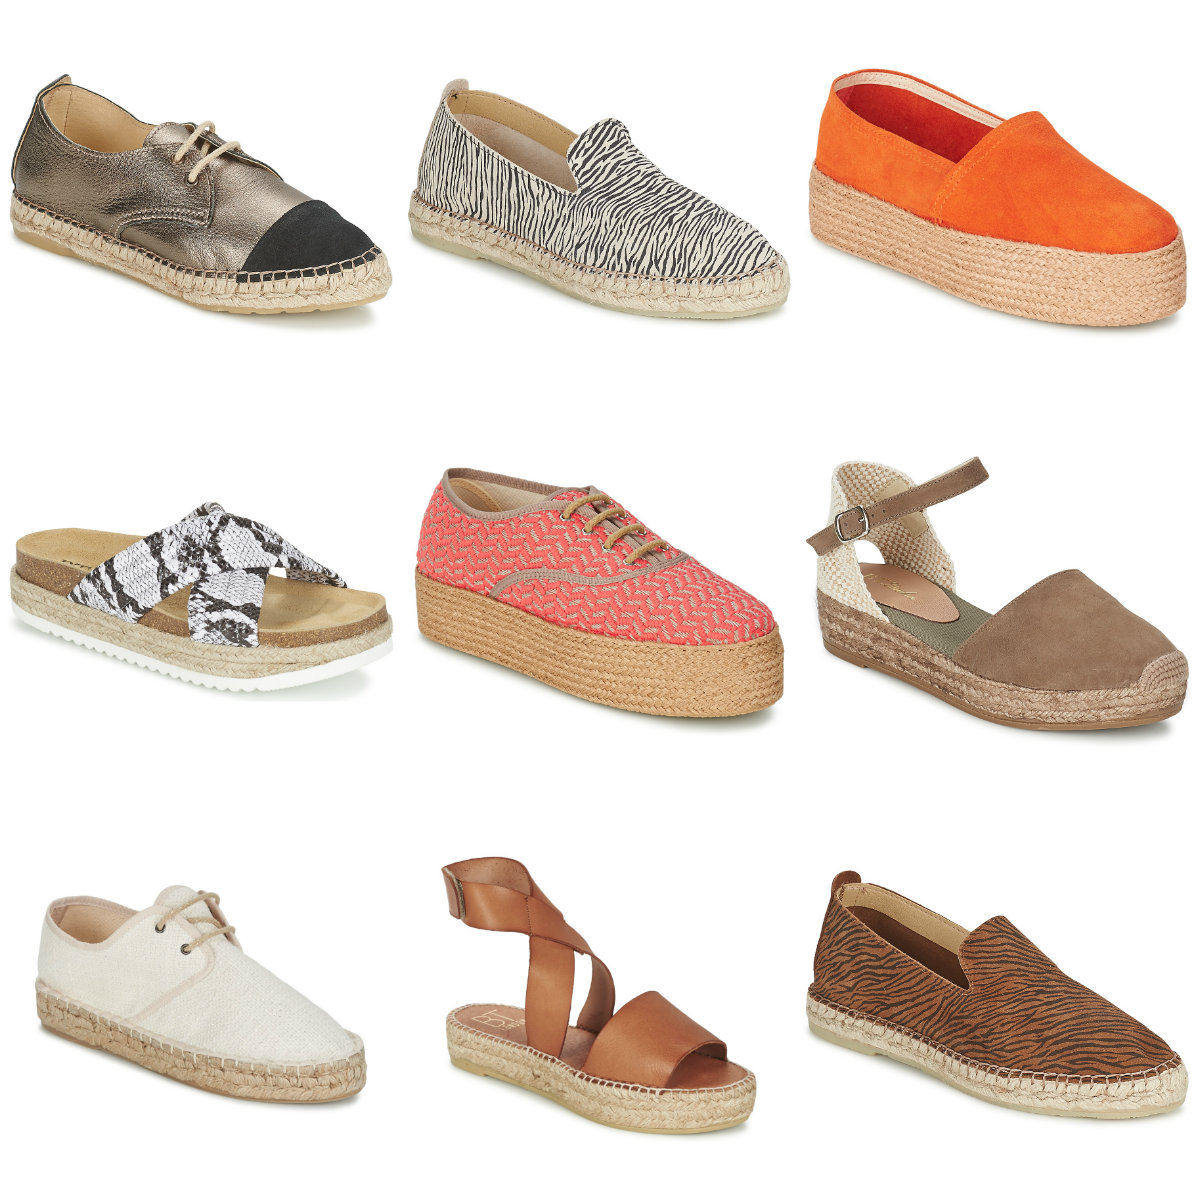 Espadrilles, Flatforms, Lace up shoe styles by BT London at Spartoo